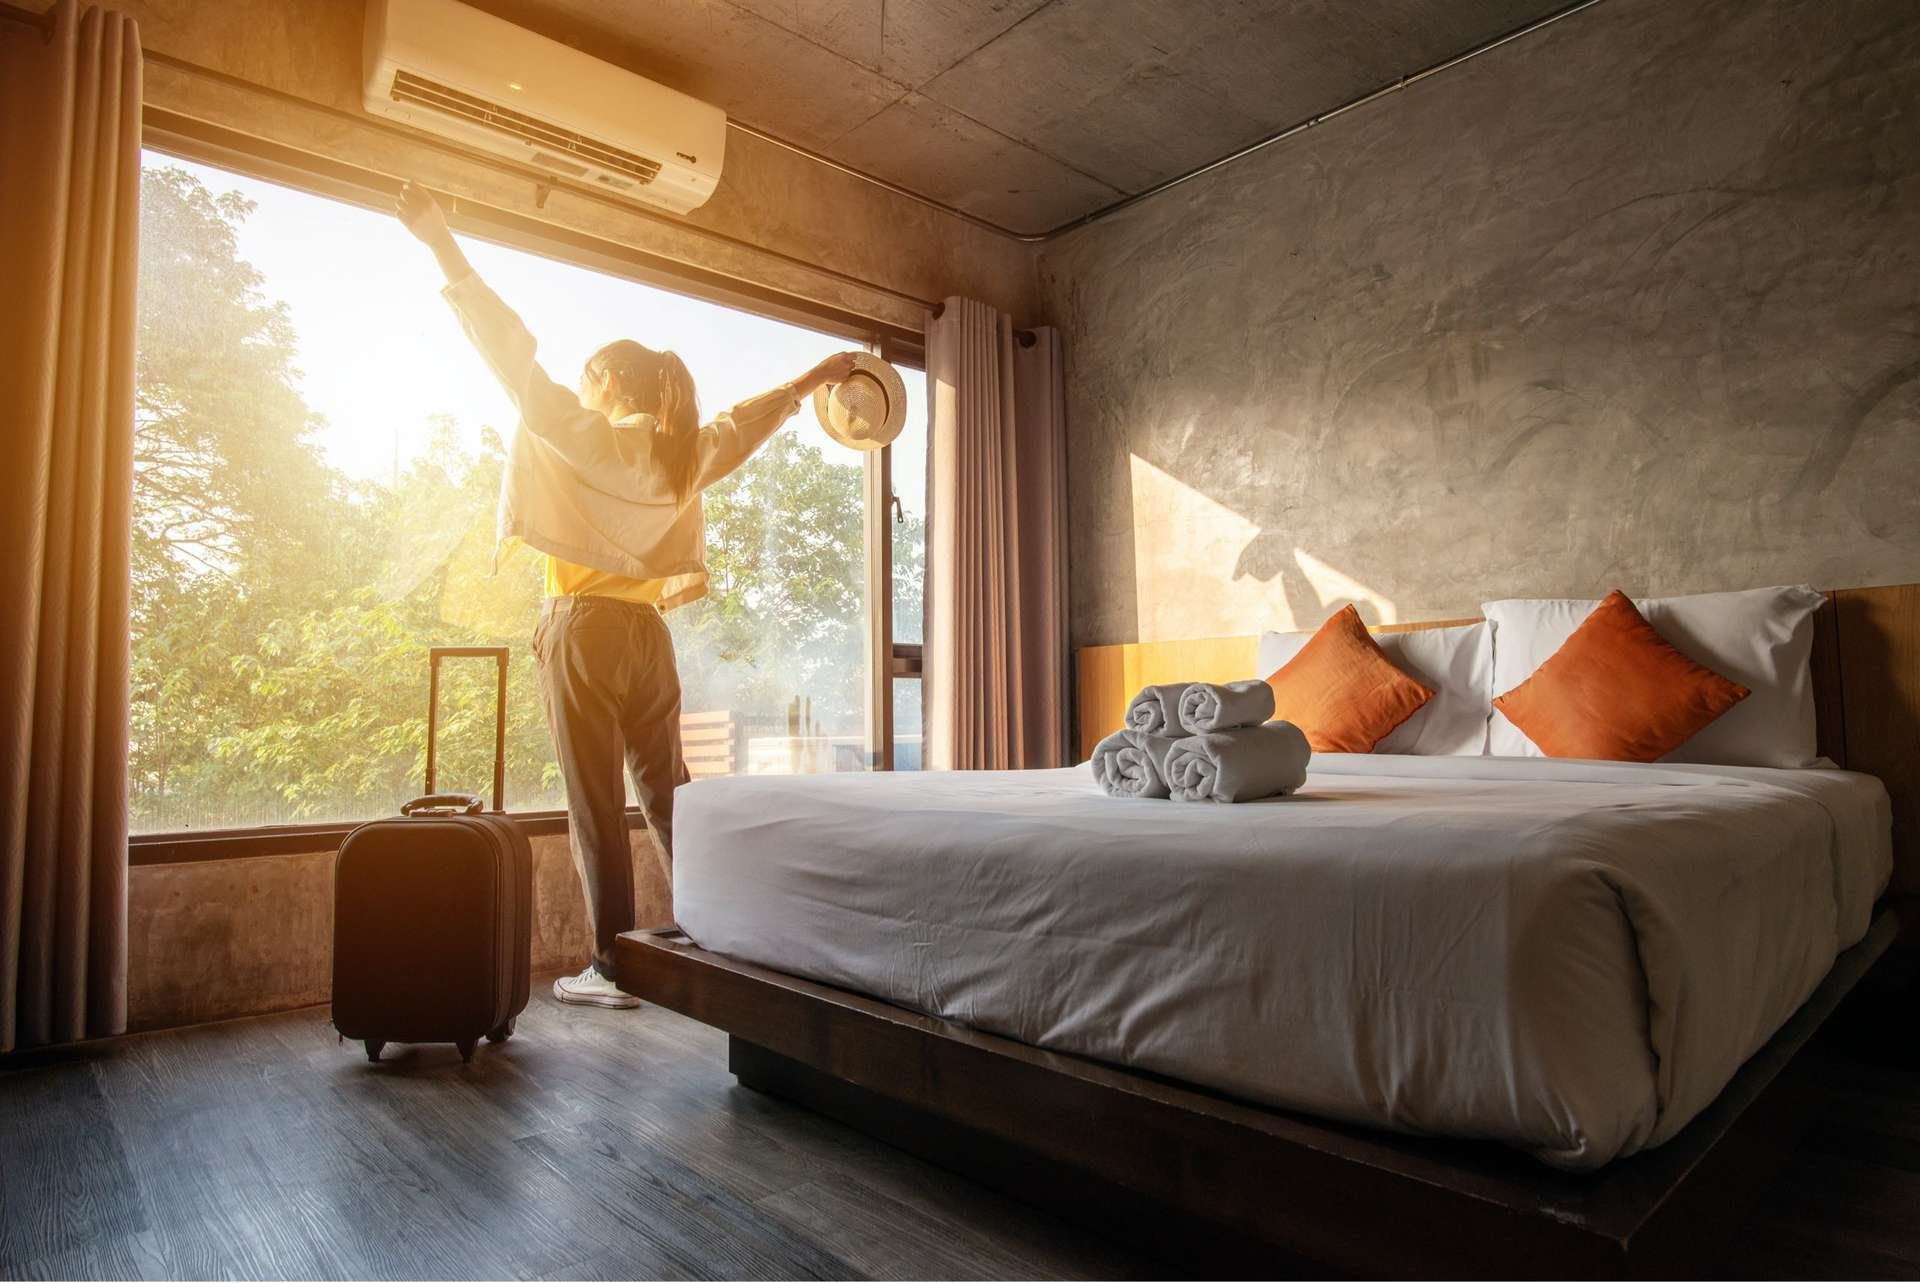 Smart Staycation dengan Online Check-in